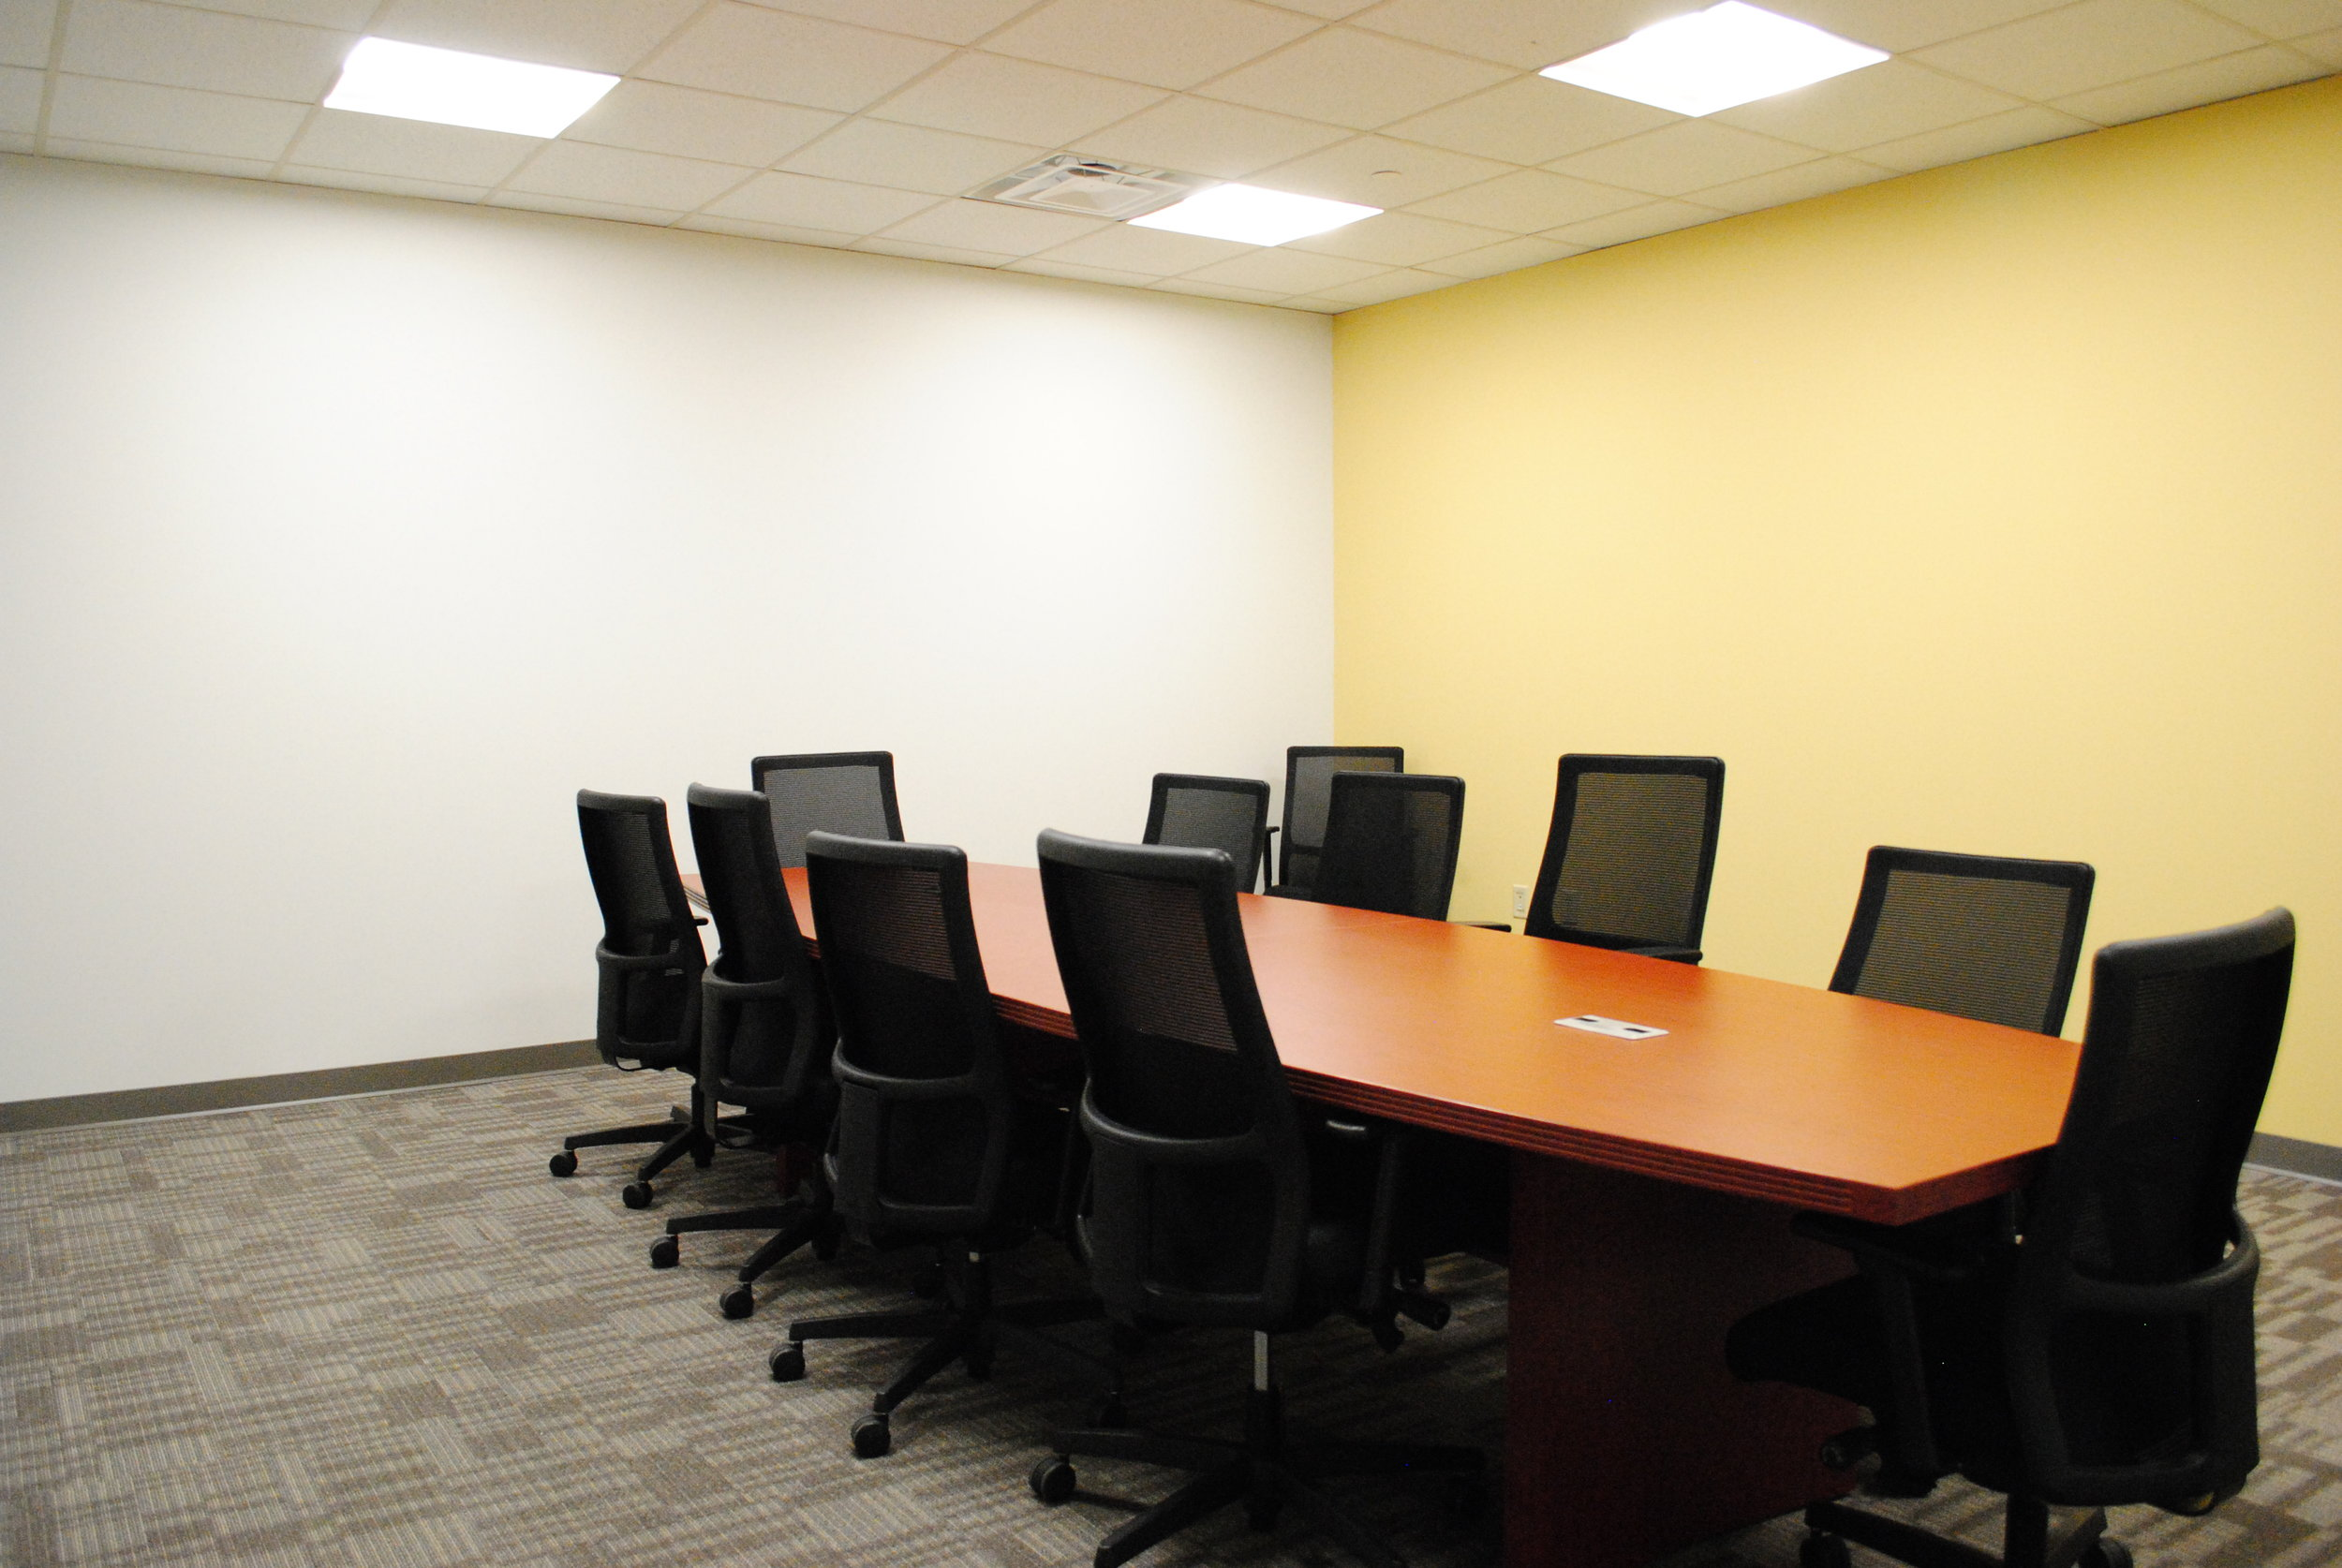 Group Therapy/IOP Room - Dayton